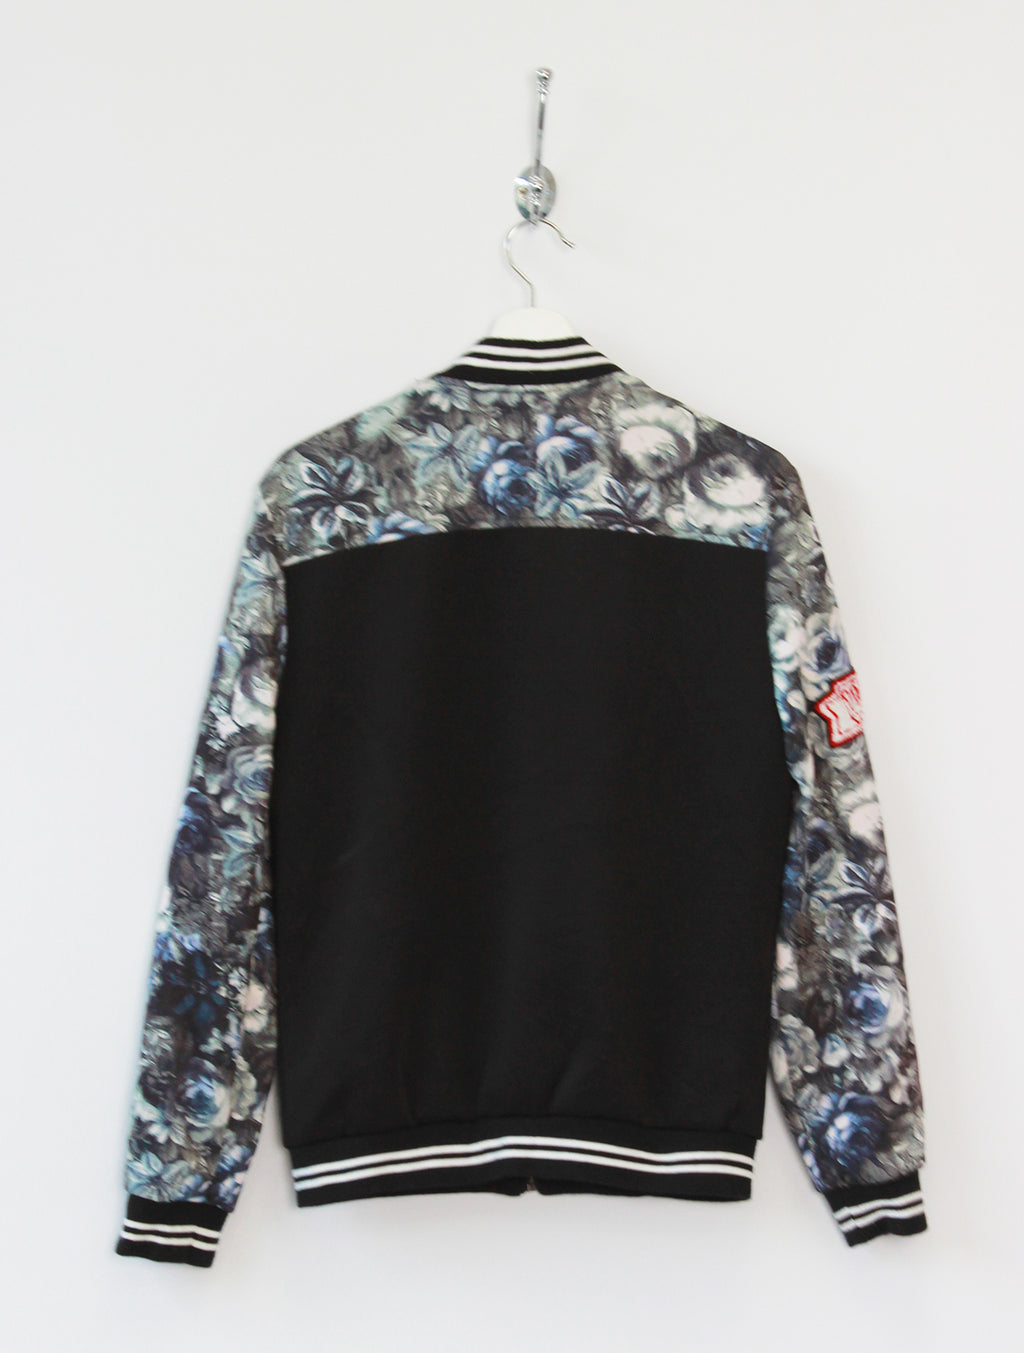 Louis Vuitton Patchwork Jacket (M)